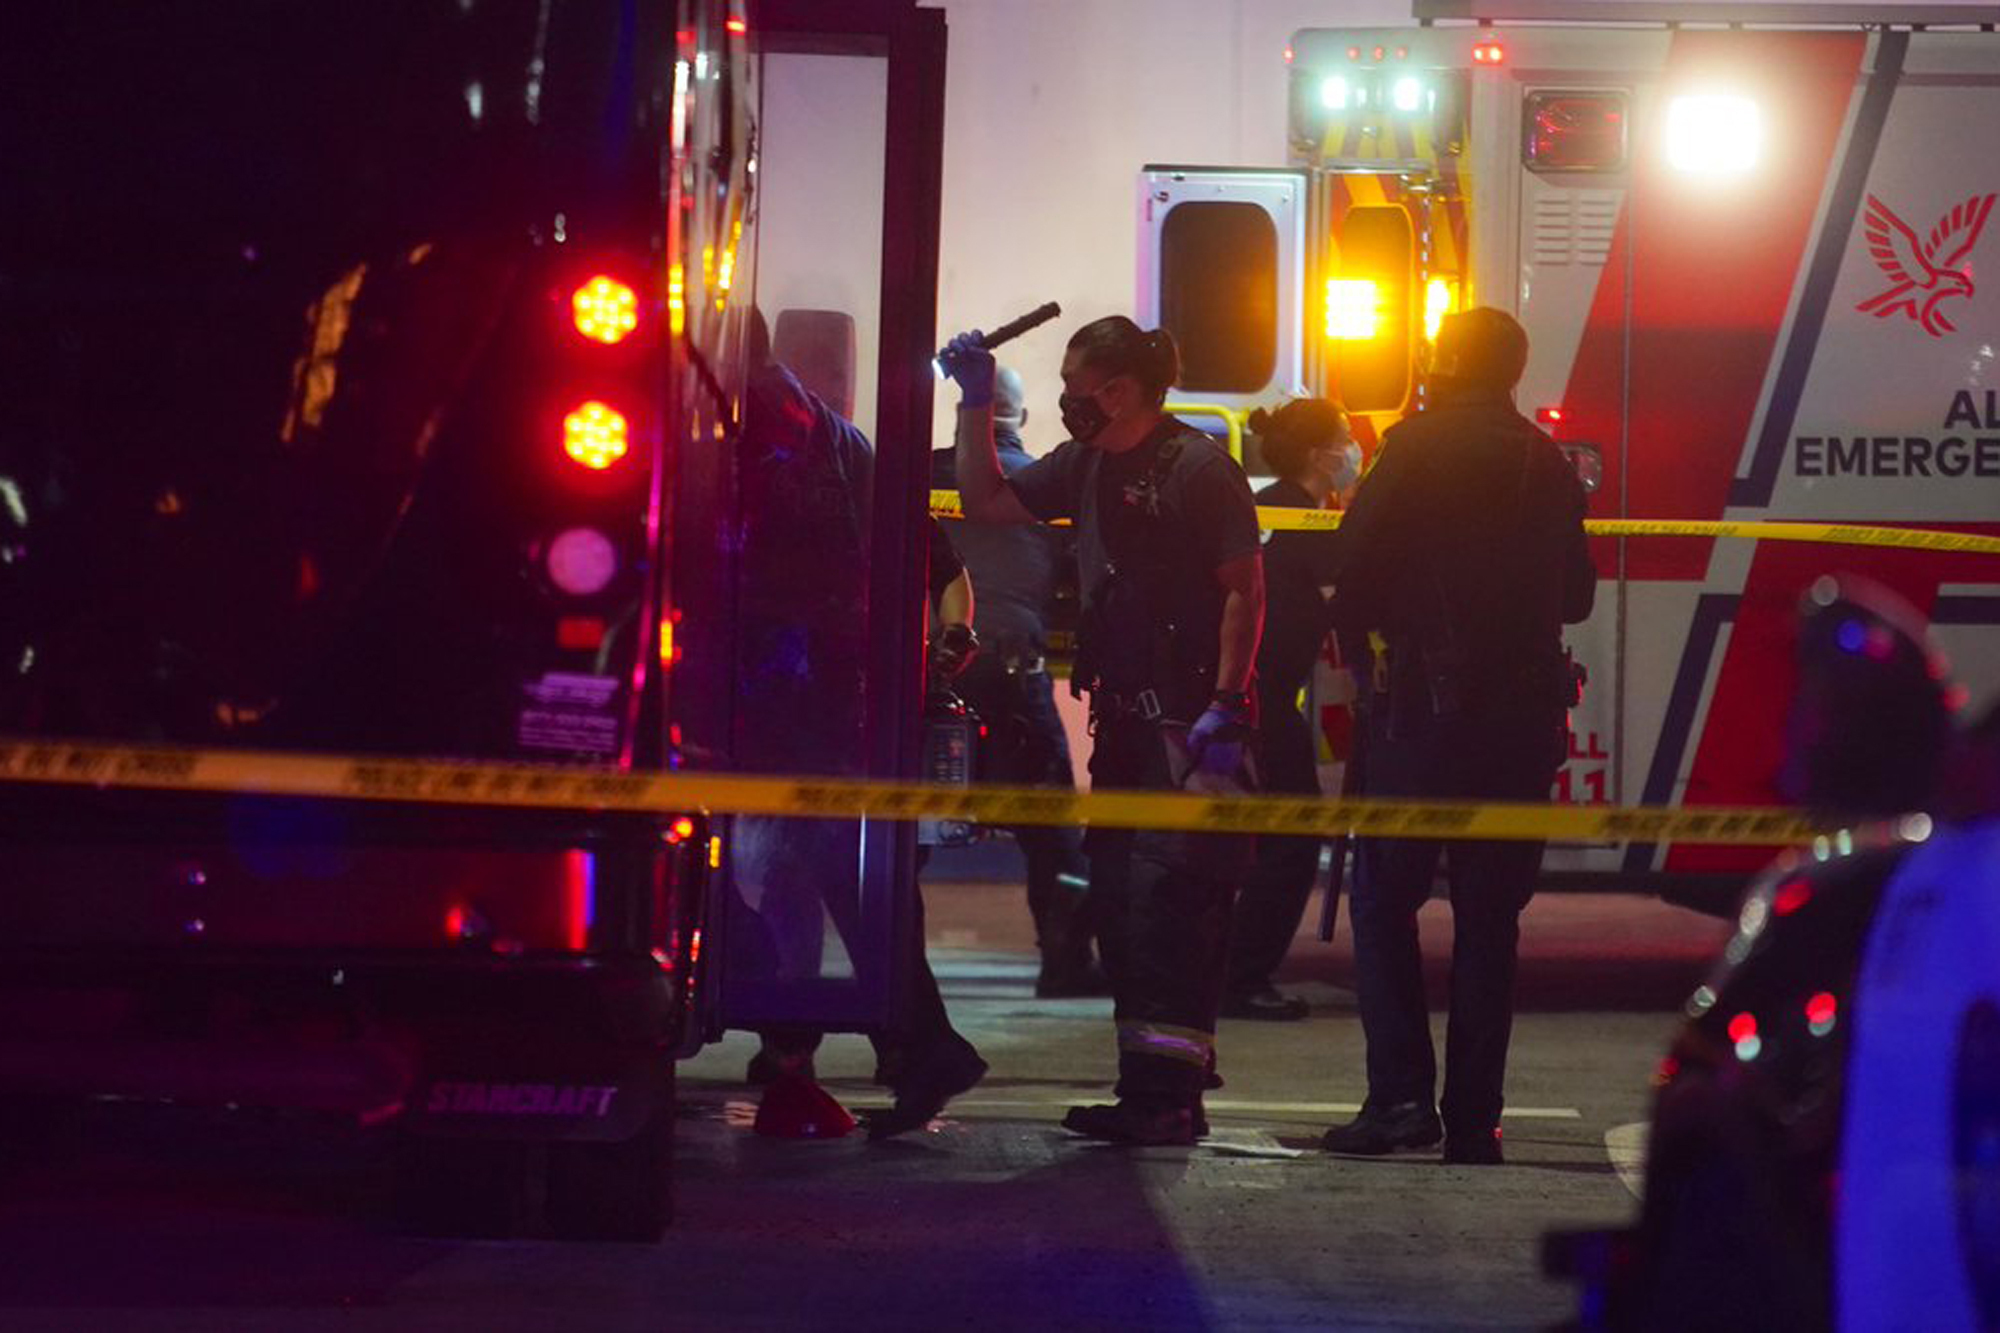 Oakland police and fire attend to multiple people who were injured in a shooting involving a party bus in East Oakland, Calif., on Tuesday, May 18, 2021. Someone opened fire on a party bus on a San Francisco Bay Area freeway early Tuesday, killing two women and wounding at least five others, authorities said. The passengers were celebrating a woman's 21st birthday when the bus was attacked on Interstate 580 as it was returning to Oakland from San Francisco, the East Bay Times reported. (Dylan Bouscher/Bay Area News Group via AP)